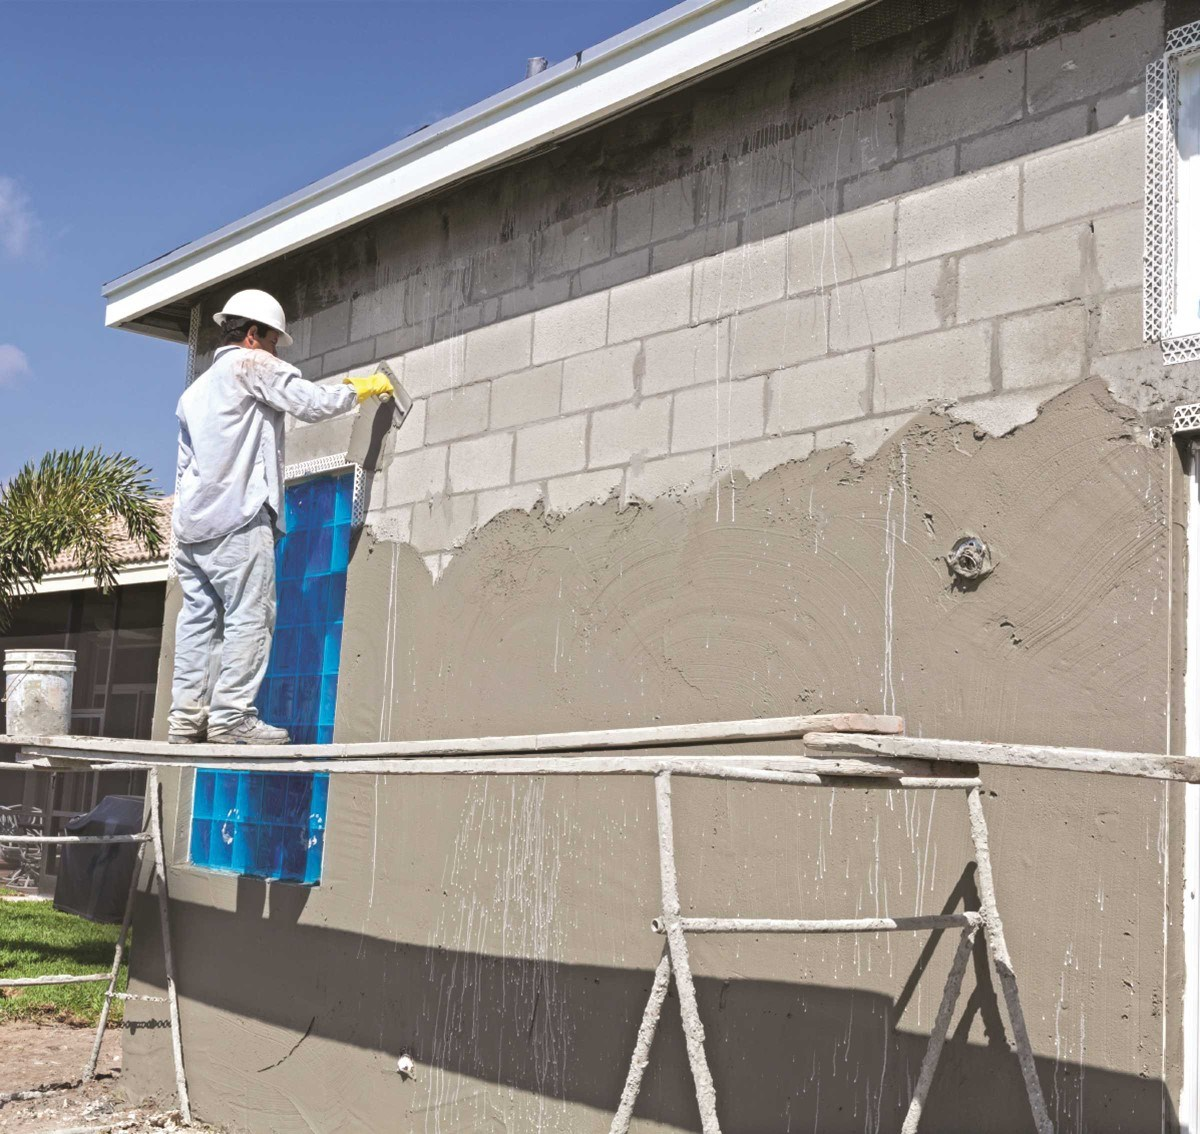 Merveilleux ... Associations May Not Have To Deal With Much In The Way Of Snow And Ice  When It Comes To Protecting And Repairing Their Concrete And Stucco  Surfaces, ...